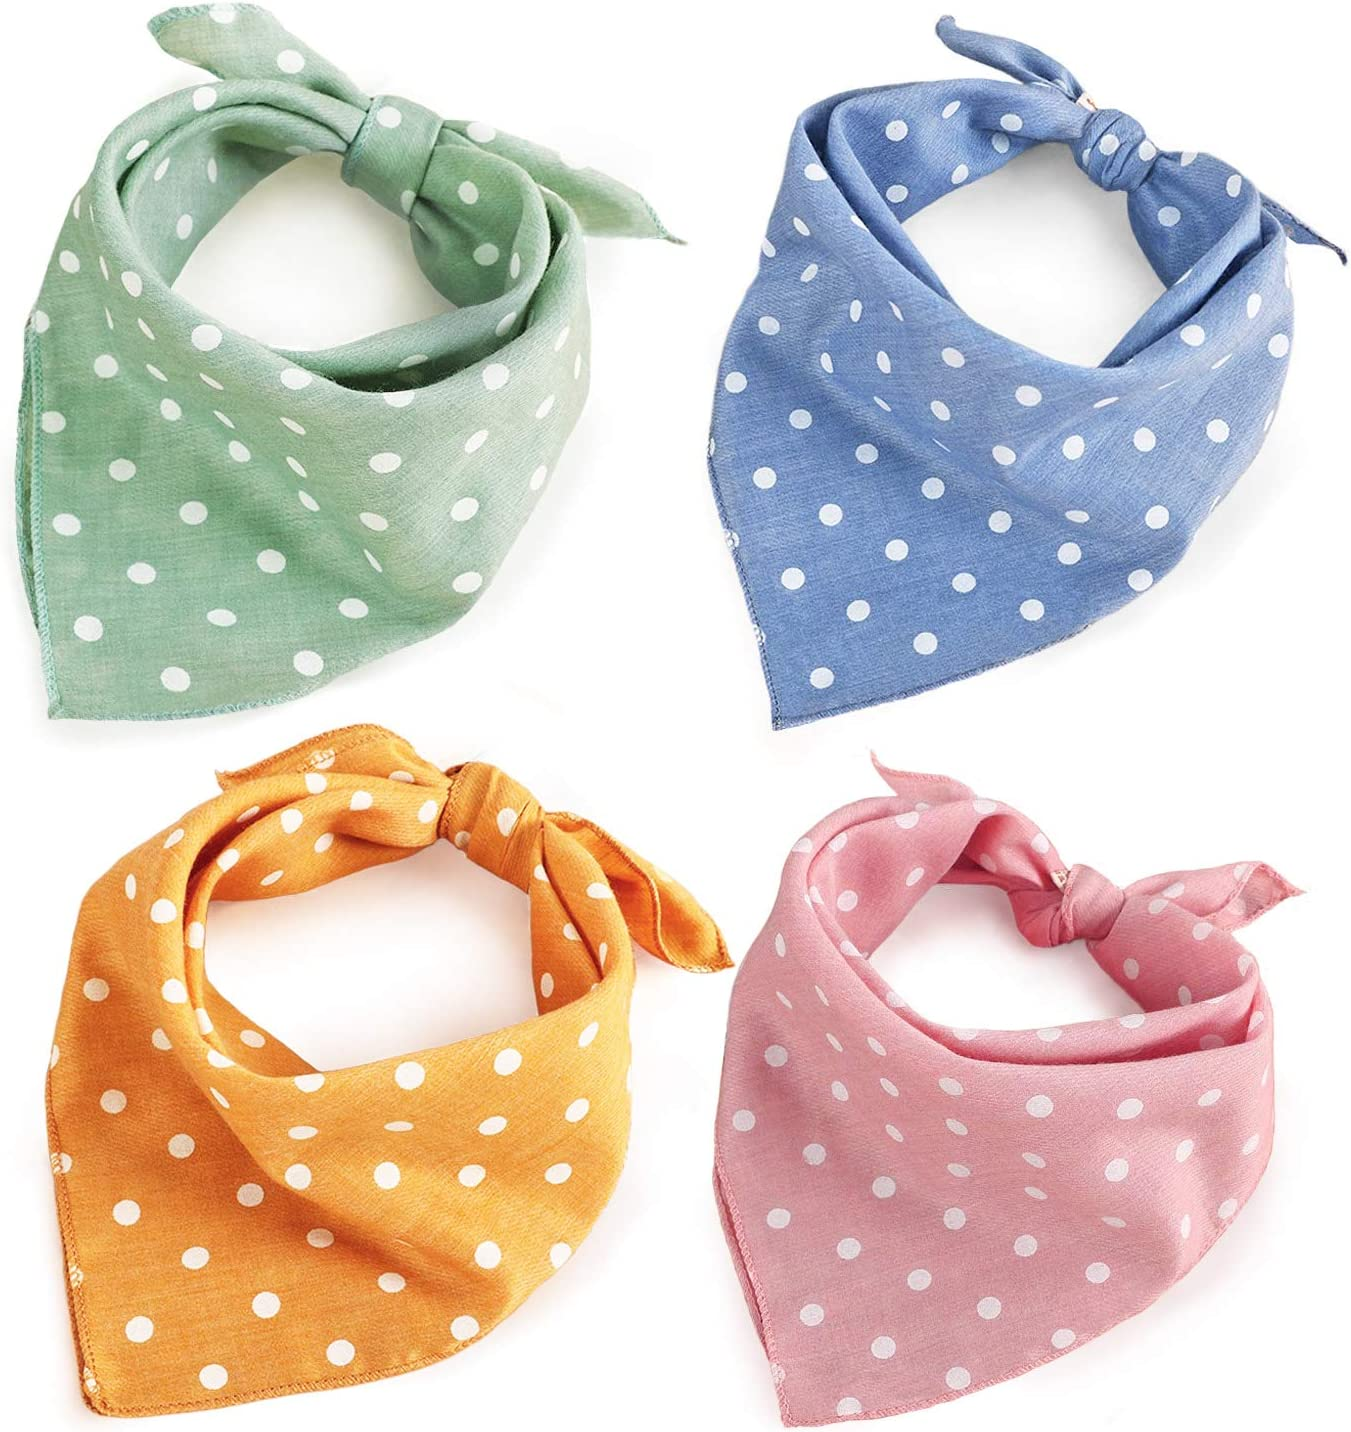 Dog Bandanas - 4PCS Birthday Gift Soft Cotton Dog Kerchief Washable Daily Bibs Pink Green Blue Orange Comfortable Scarfs, Adjustable Accessories for Small Medium Large Girl Boy Dogs Puppies Cats Pets